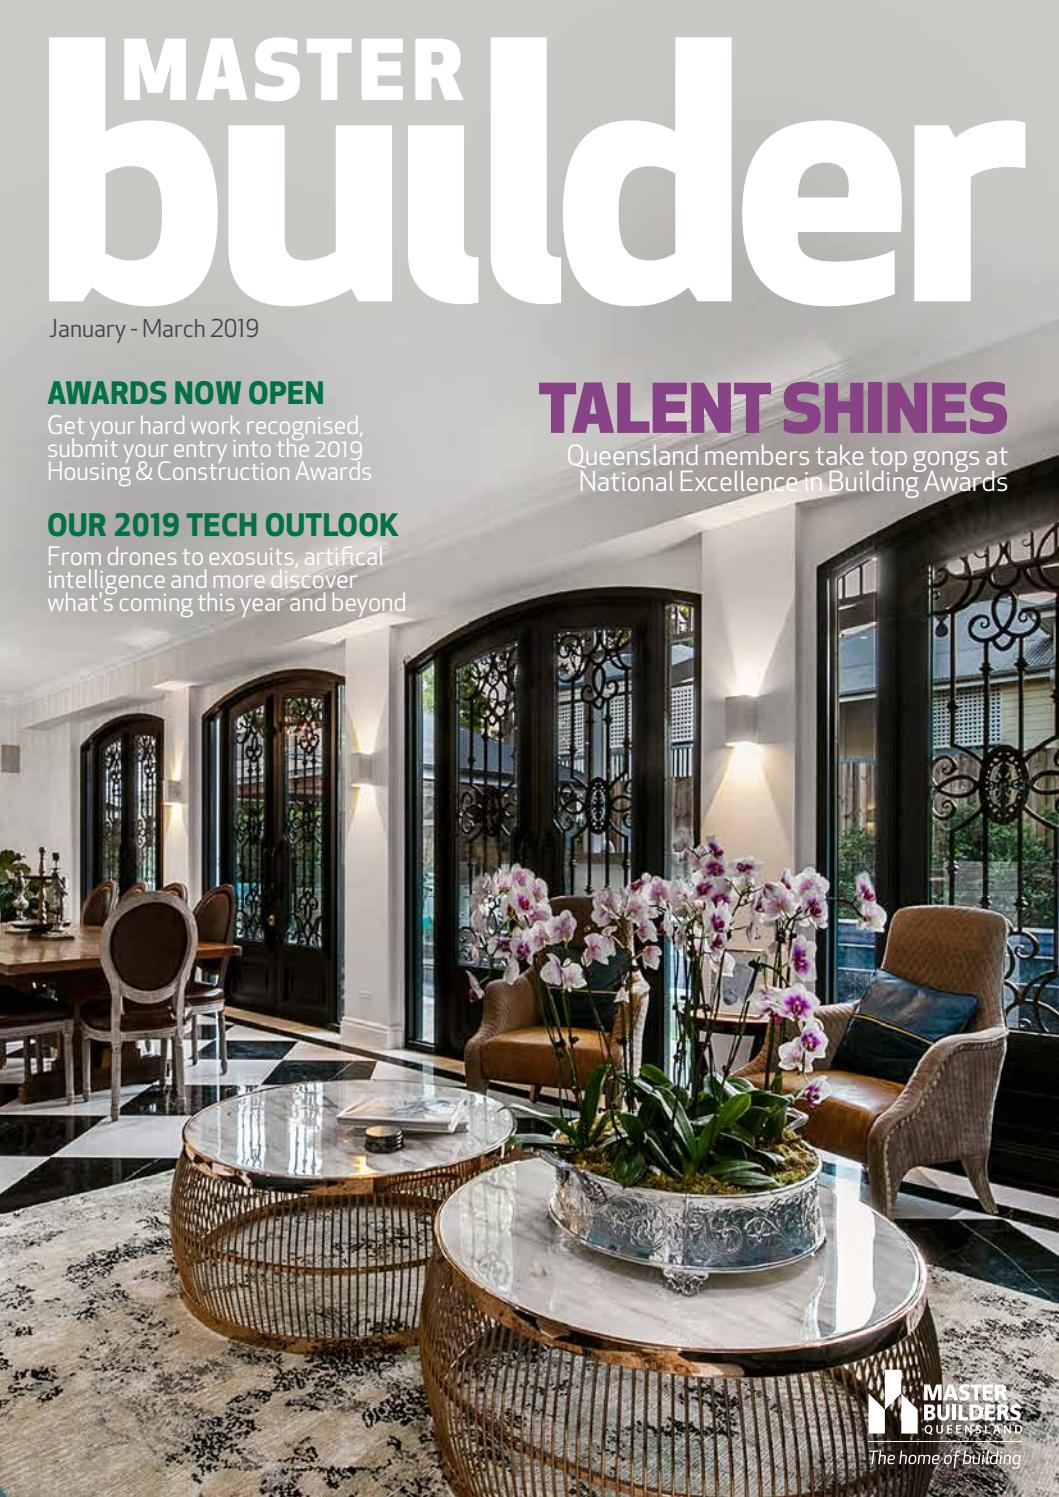 Master Builder magazine - January - March 2019 by Master Builders